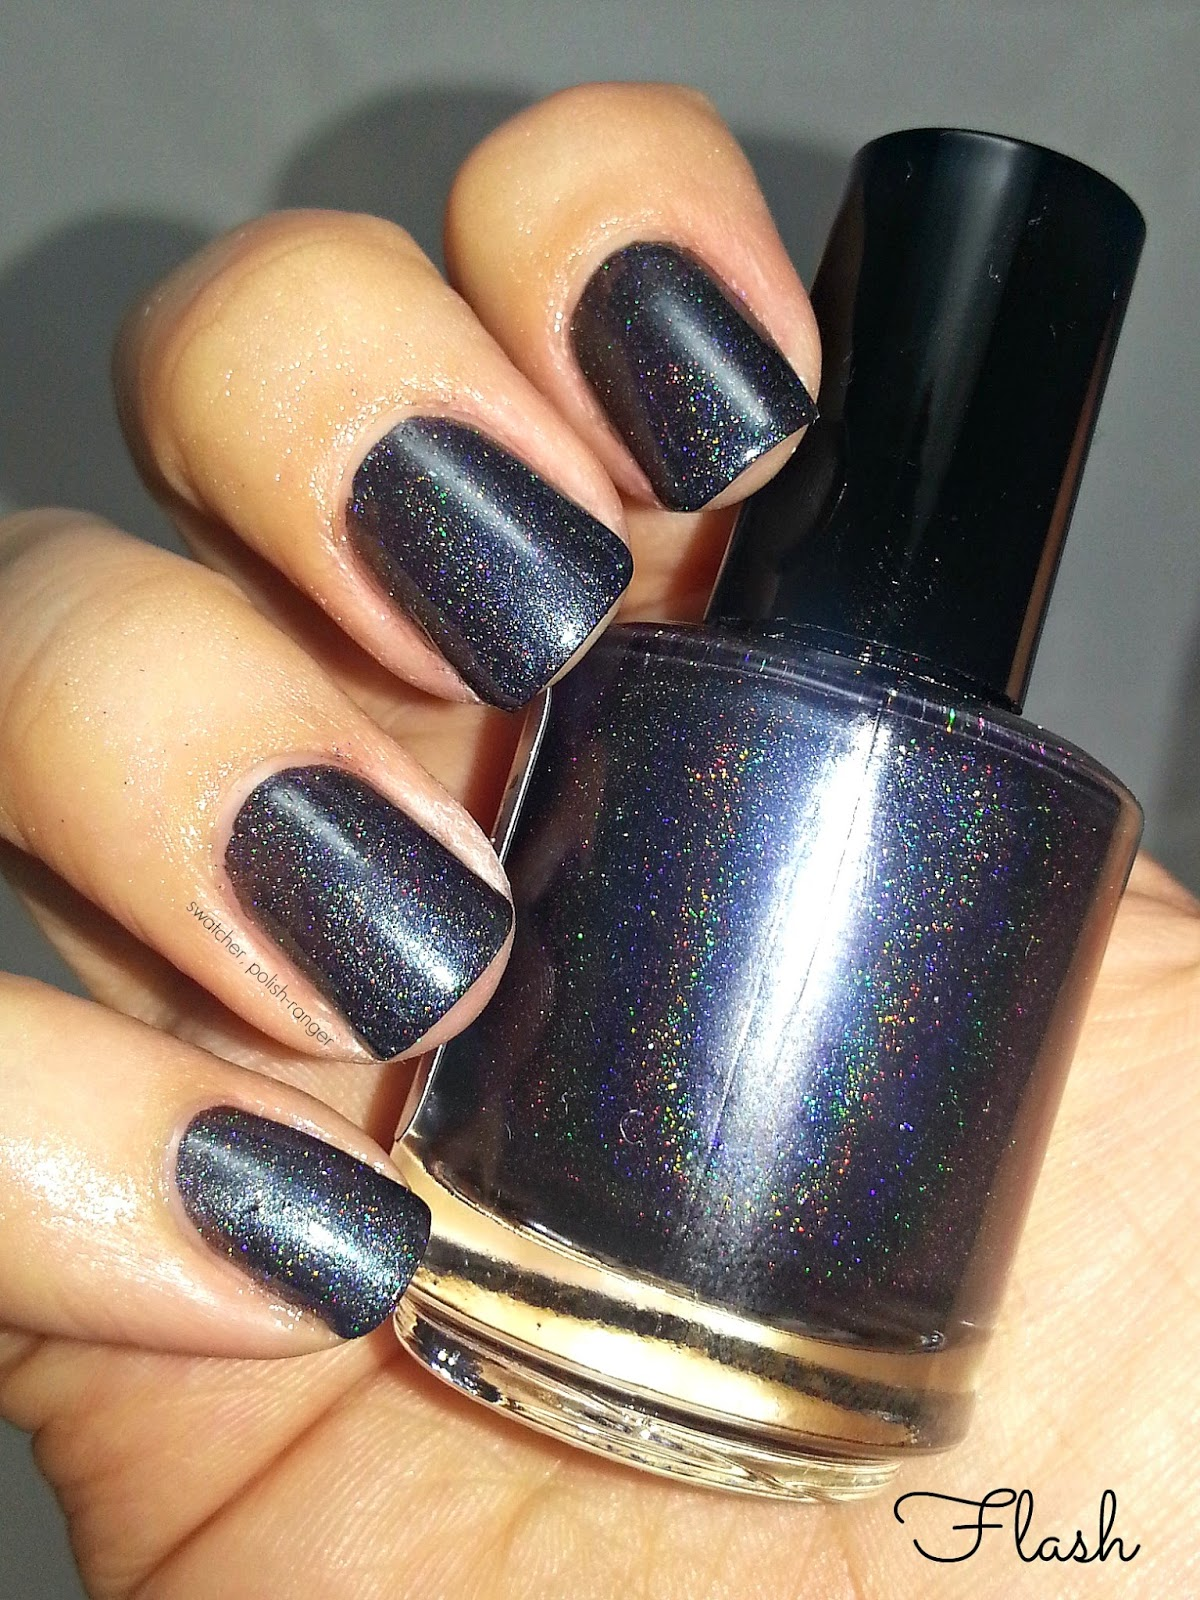 Sweetcheeks Polish Black Ice swatch